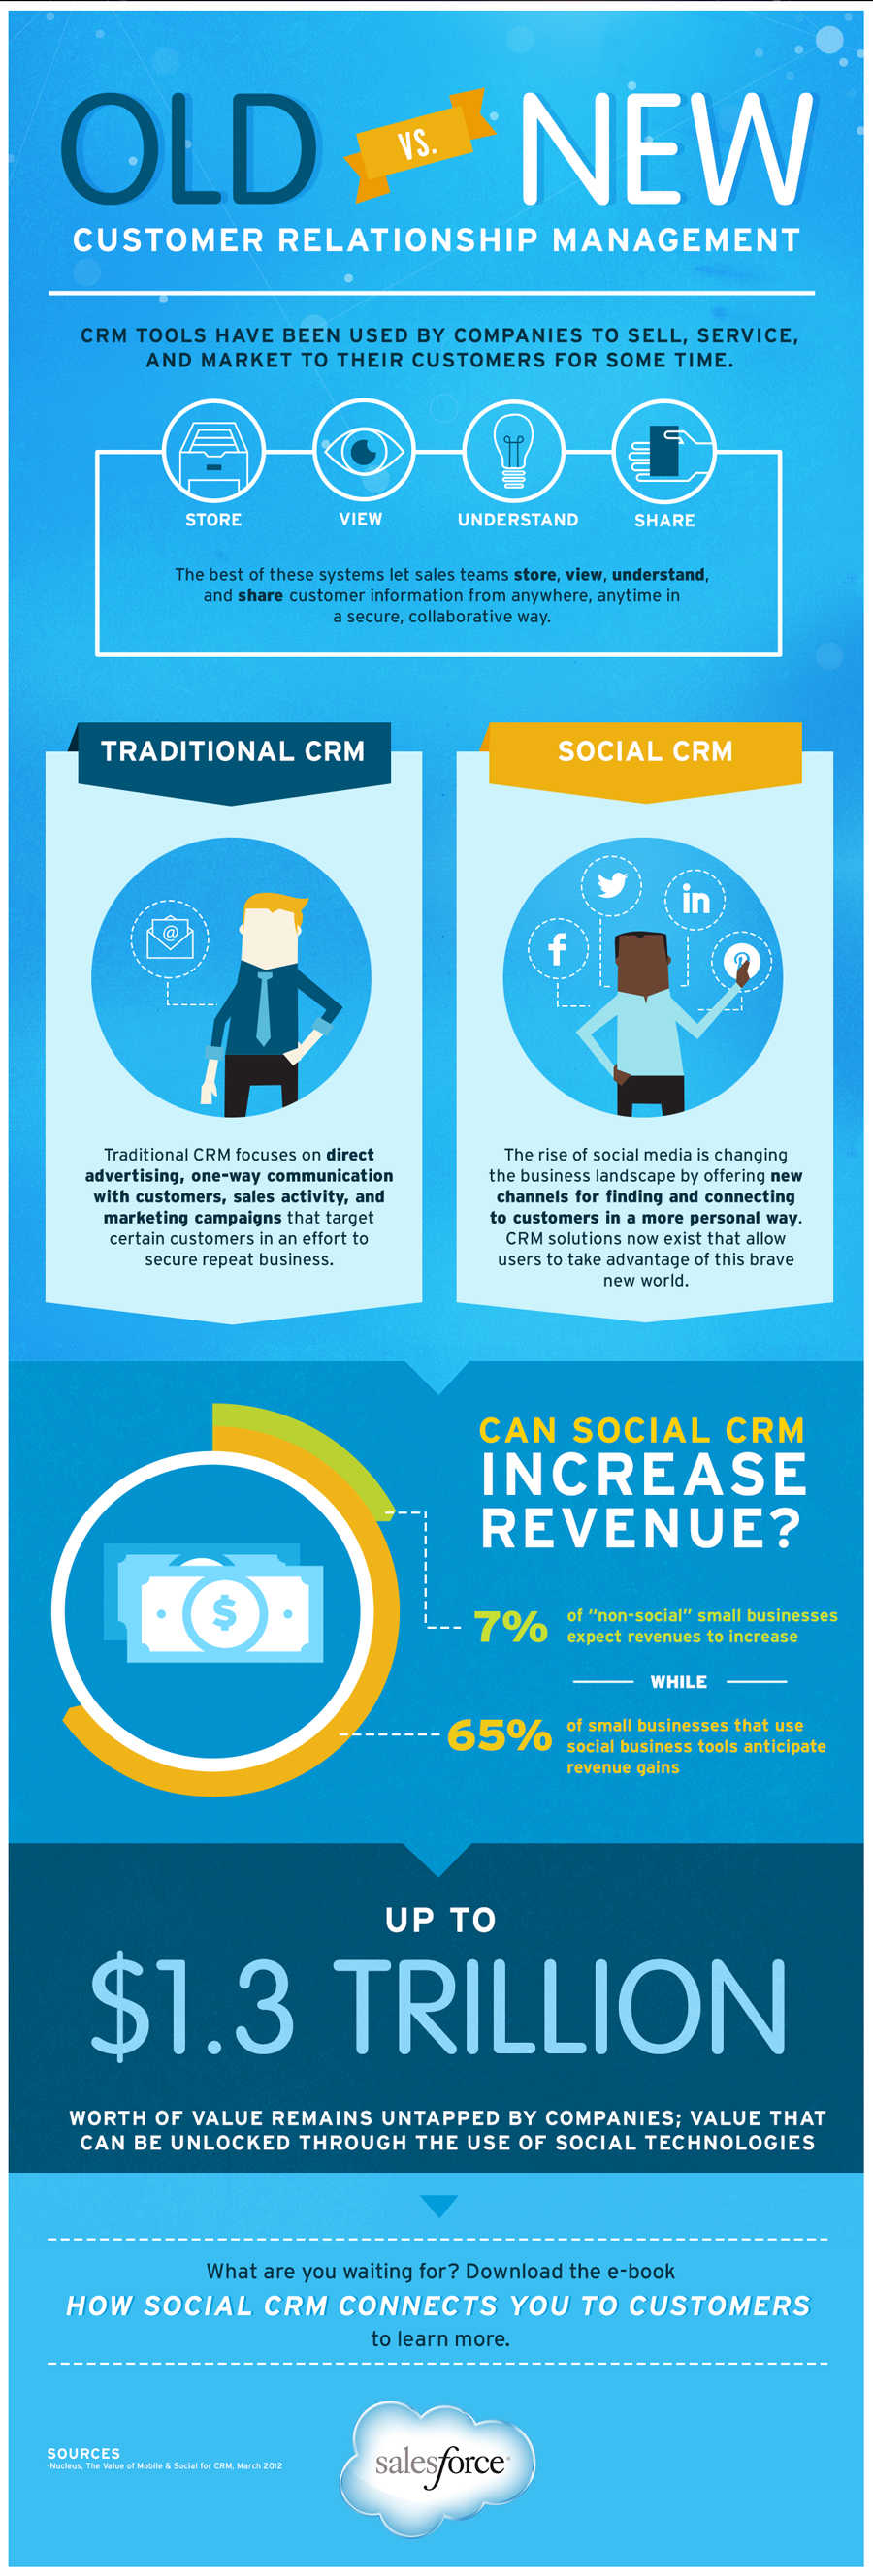 how can the information collected by a crm system be used to gain insight and boost a business profi Accuracy and cost effectiveness of core business activities enable better management of product, customer, employee, asset and  crm and other line-of-business (lob) systems through integration, organizations can further  improving the efficiency, accuracy and cost effectiveness of core business activities.